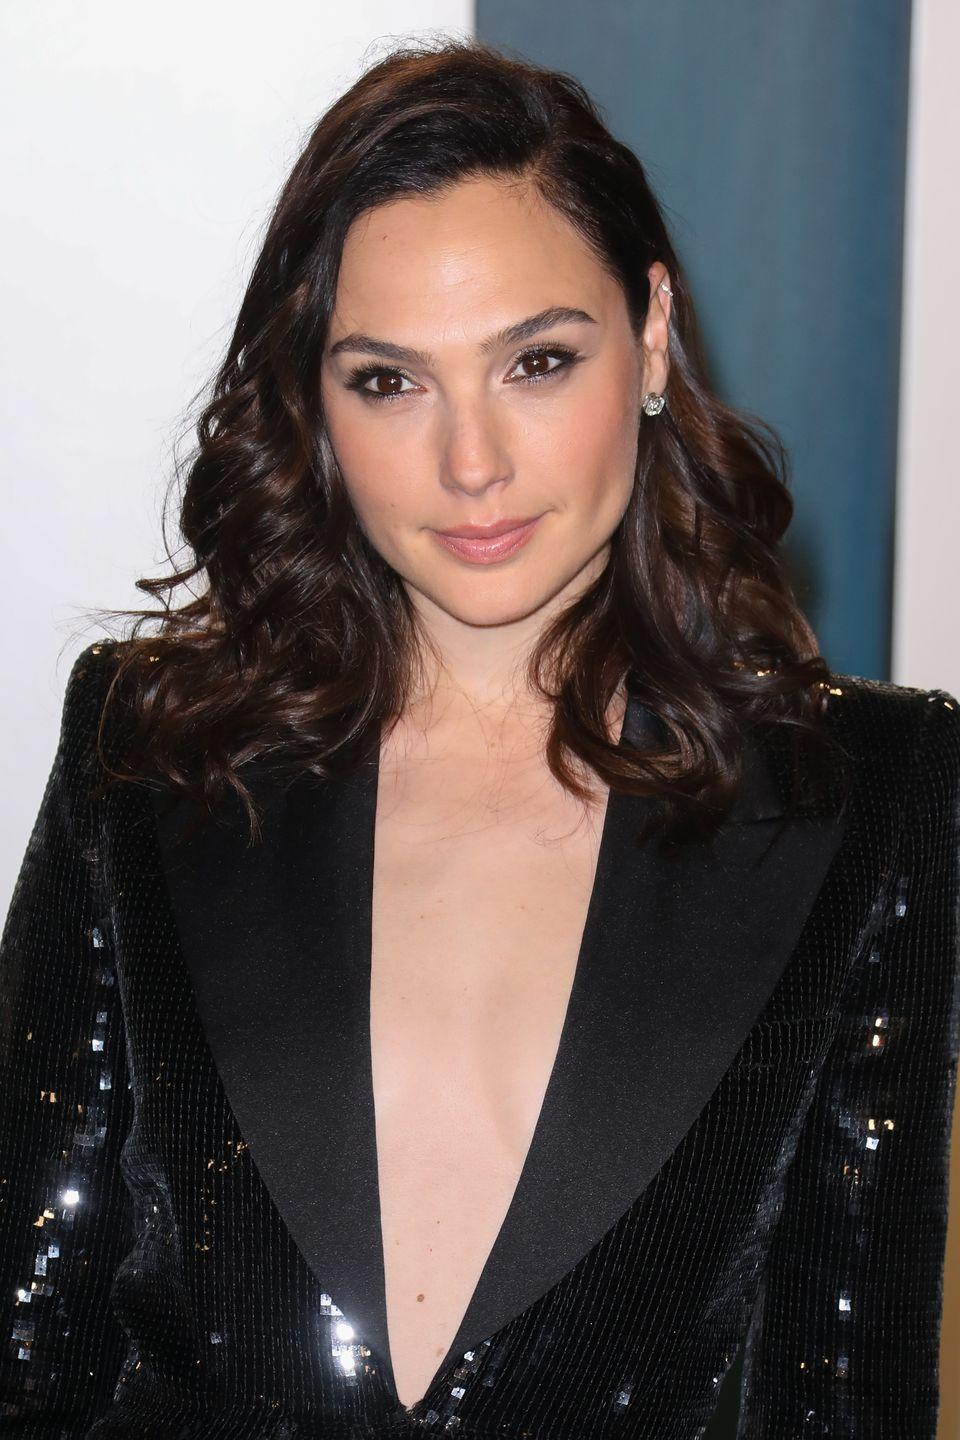 <p>Gal went on to become an actress and model in Israel. In 2009, she began appearing in the <em>Fast & Furious </em>franchise films and later made her film debut as Wonder Woman in <em>Batman v Superman: Dawn of Justice</em>. </p>